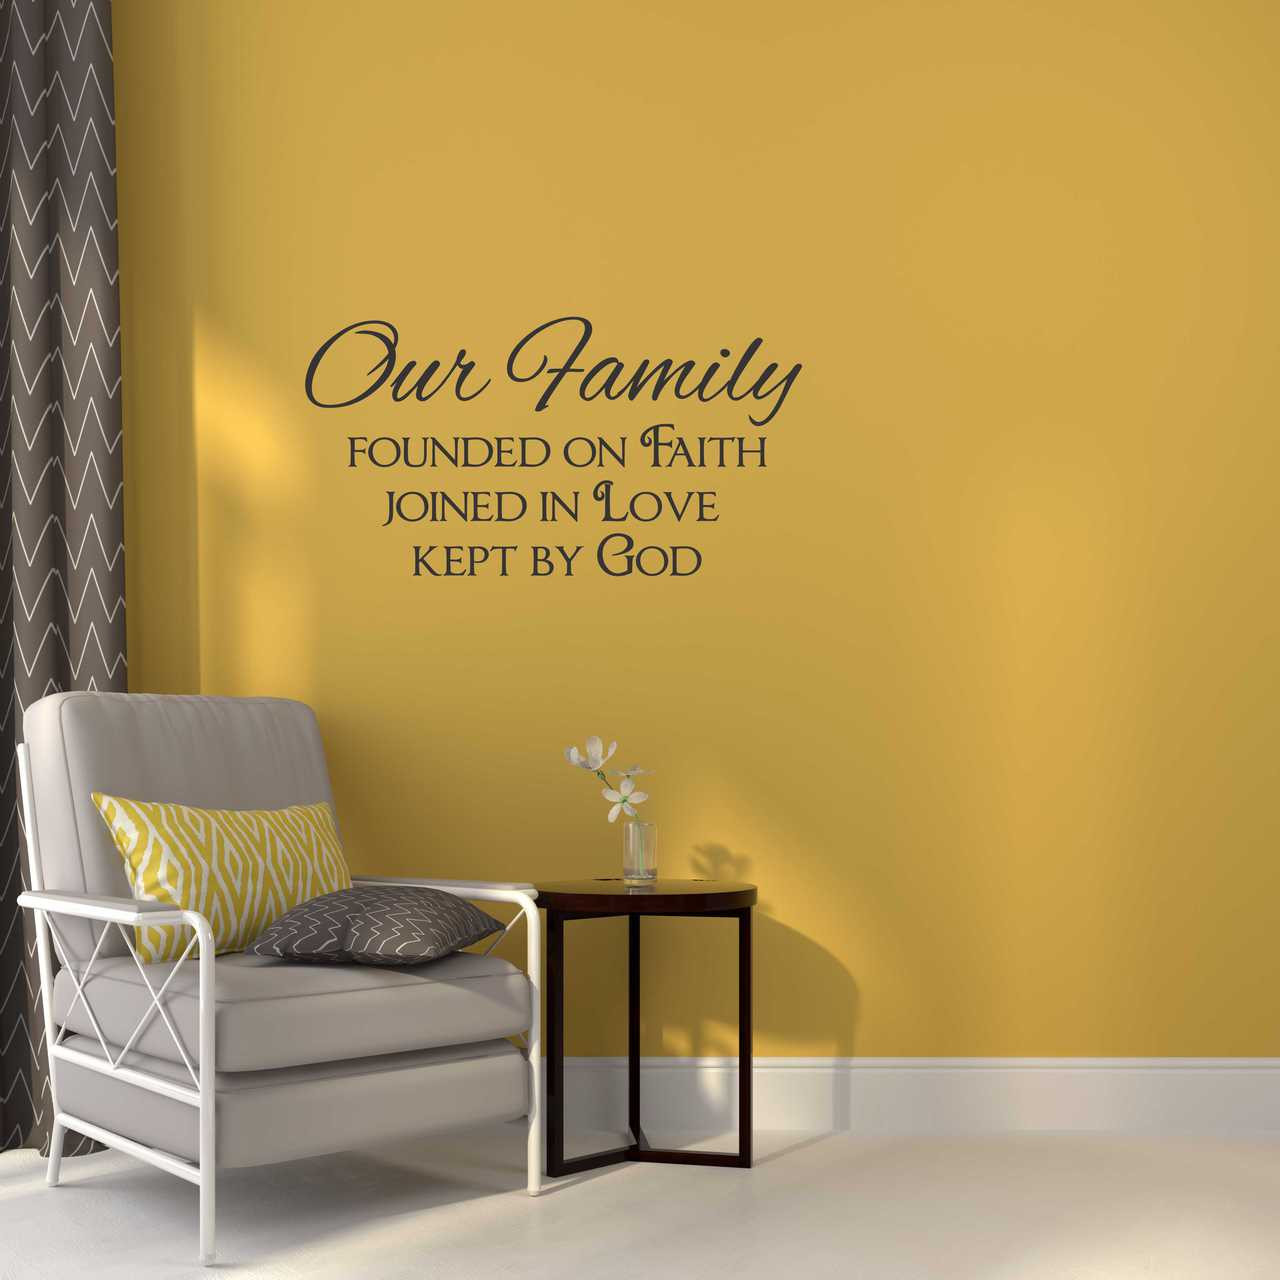 Wall Decals Quotes: Our Family Founded On Faith, Love, God Wall Decal Quote